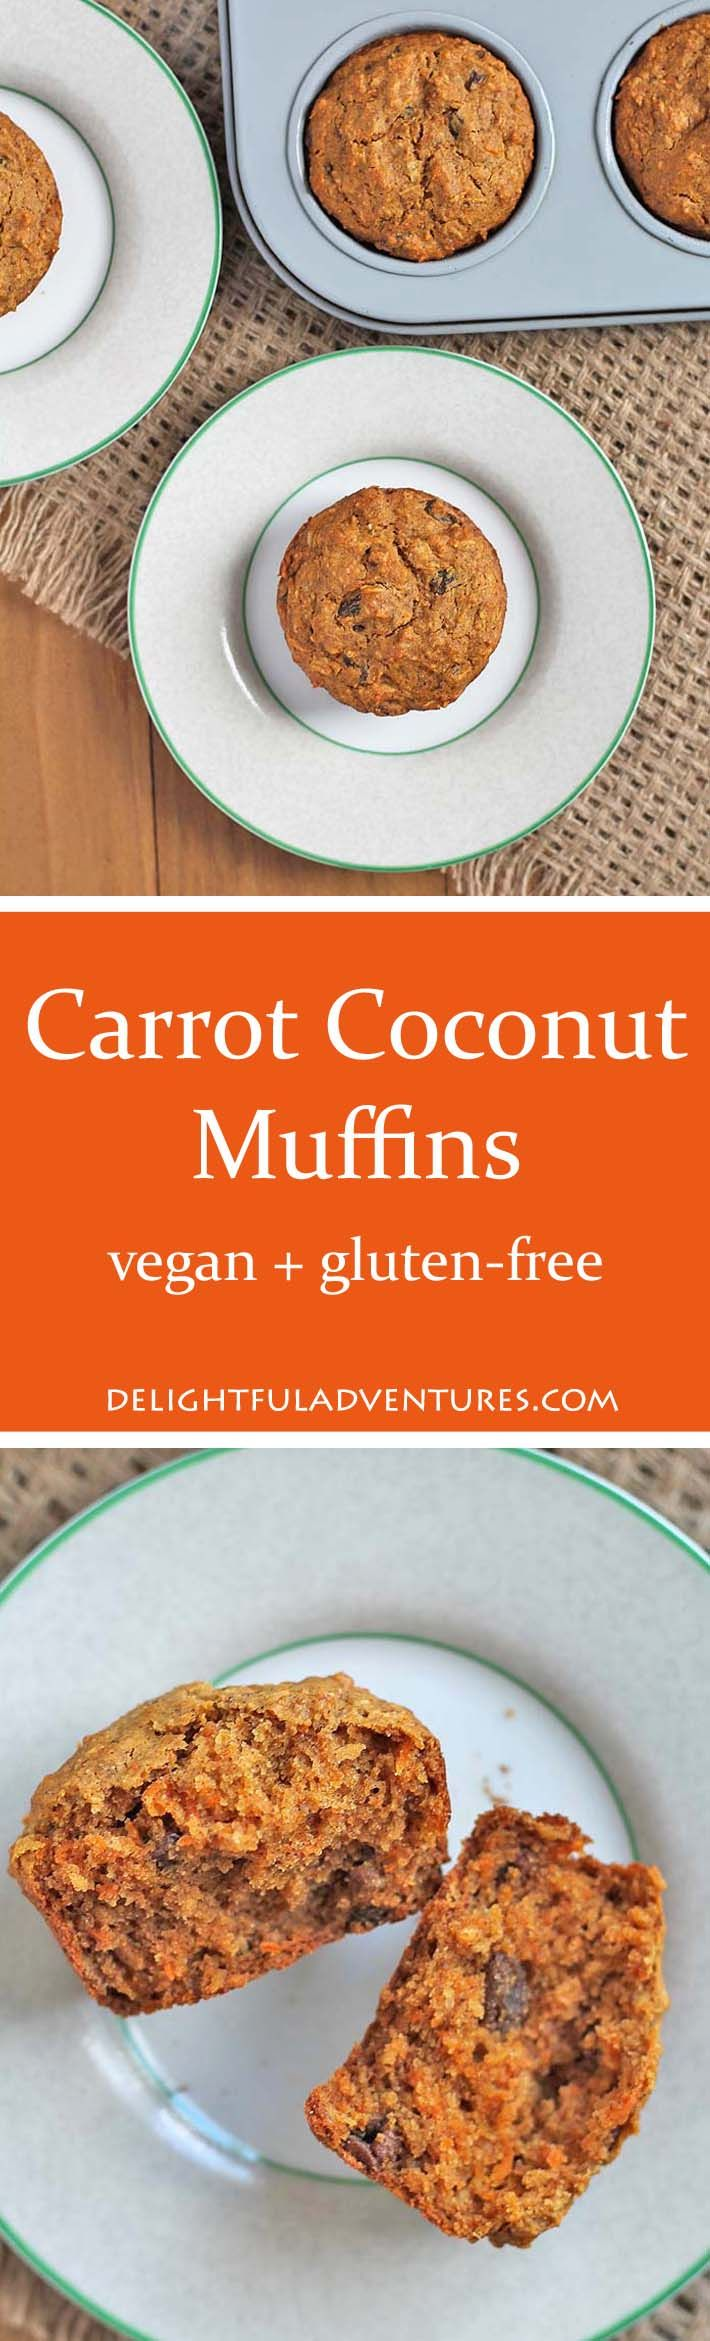 ... Coconut Muffins on Pinterest | Muffins, Food Categories and Muffin